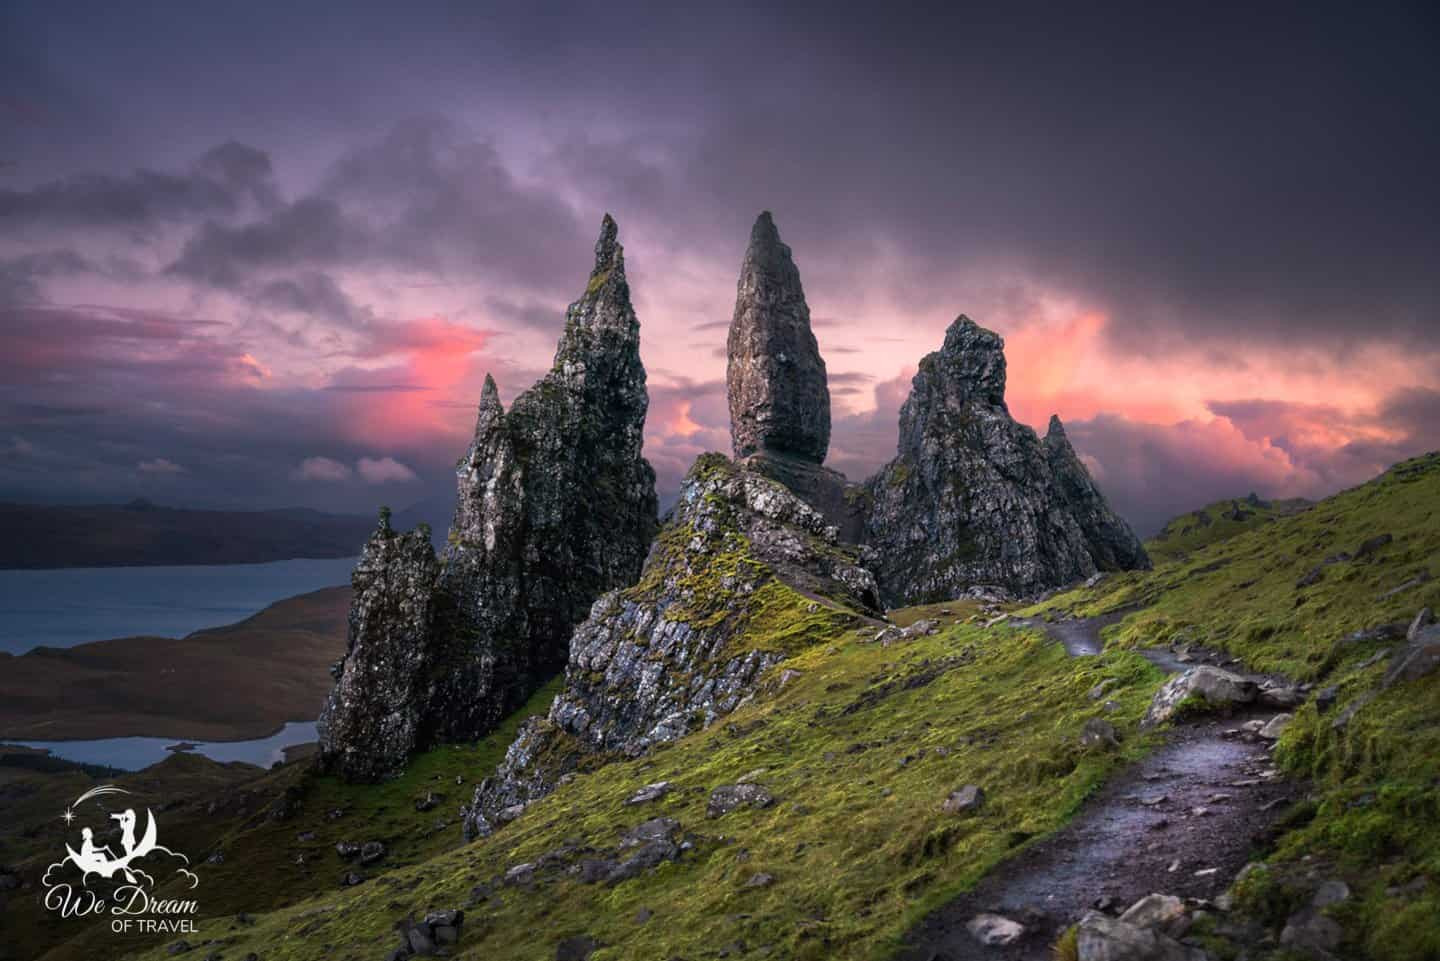 No surprise here, the Old Man of Storr is absolutely the best destination for landscape photography on the Isle of Skye.